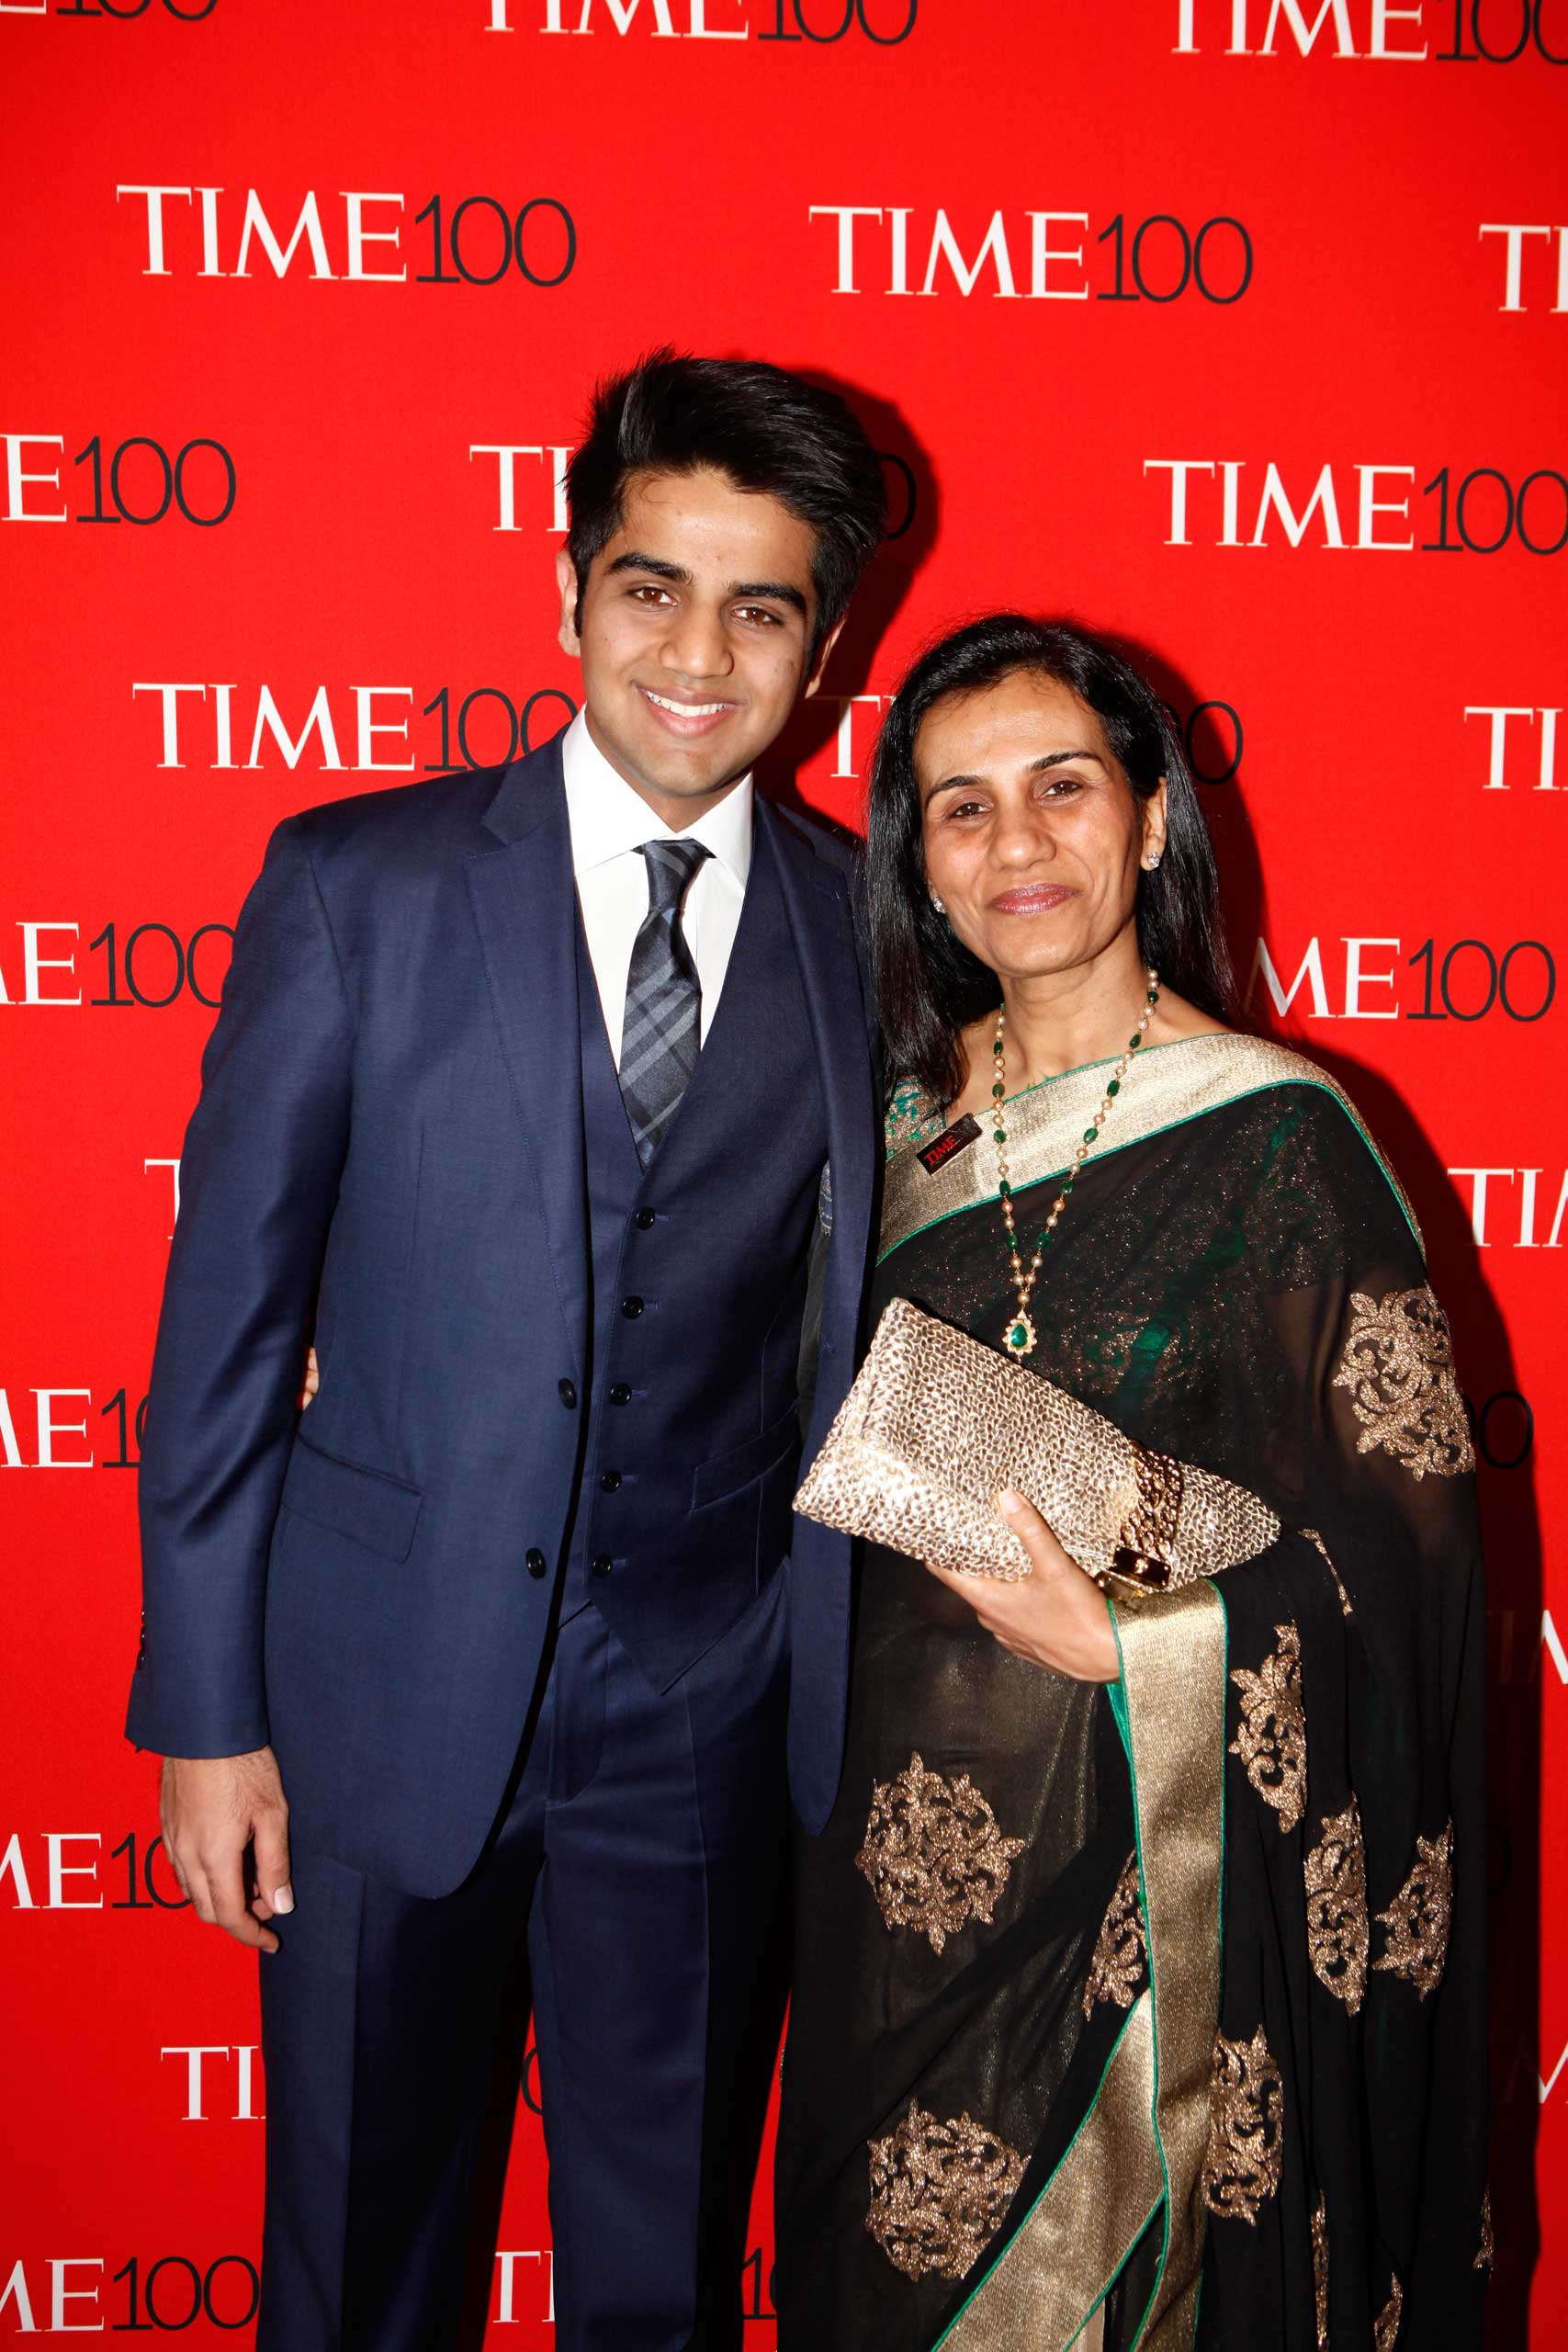 Chanda Kochhar attends the TIME 100 Gala at Jazz at Lincoln Center in New York City on Apr. 21, 2015.